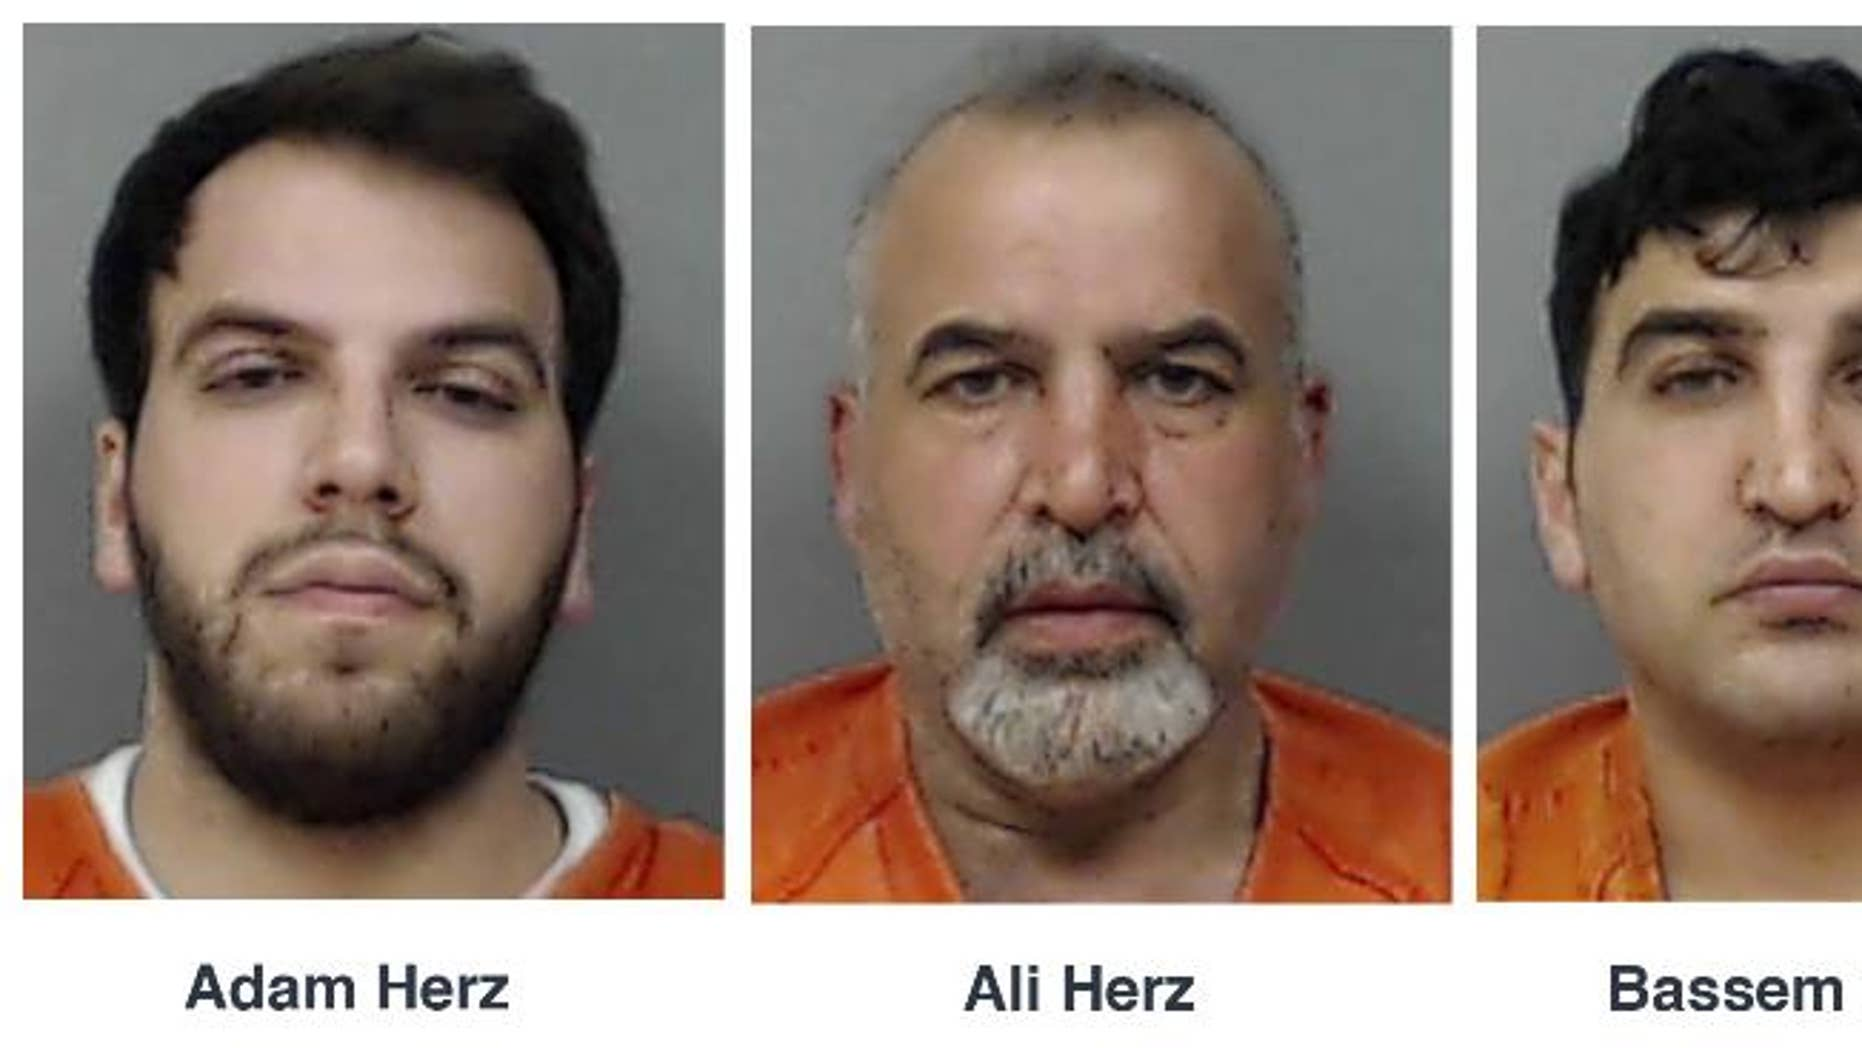 This combo of booking photos released by Linn County Sheriff's Office in Cedar Rapids. Iowa, shows four relatives, from left, Adam Herz, Ali Herz, Bassem Herz and Al Sarah Zeaiter, who are charged in Iowa on Tuesday, May 12, 2015, with conspiring to smuggle guns and ammunition to Lebanon that were hidden with equipment exports and supplies for Syrian refugees. Federal agents intercepted cargo containers in March and again last week that were bound for Beirut carrying a total of 152 firearms and 16,000 rounds of ammunition, according to a criminal complaint. The complaint says the four came under suspicion as they stockpiled more than $100,000 worth of guns and ammunition legally purchased from dealers in eastern Iowa over the last 17 months. (Linn County Sheriff's Office via AP)